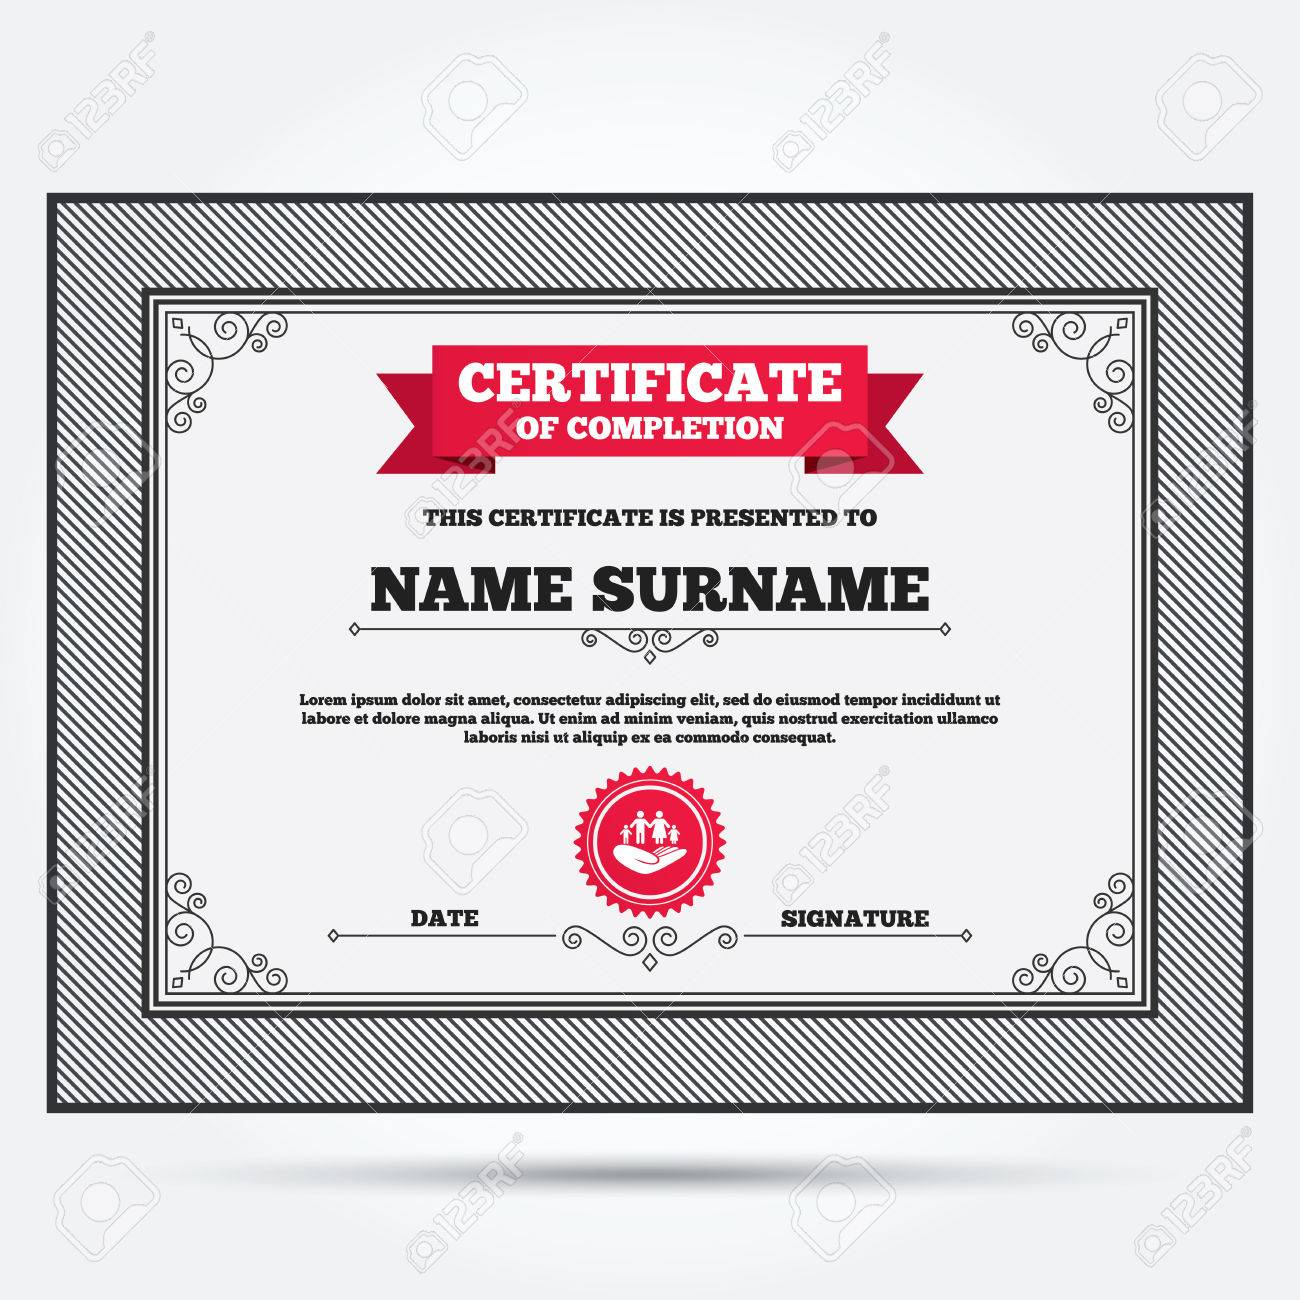 Certificate Of Completion Family Life Insurance Sign Hand Holds Royalty Free Cliparts Vectors And Stock Illustration Image 42332482